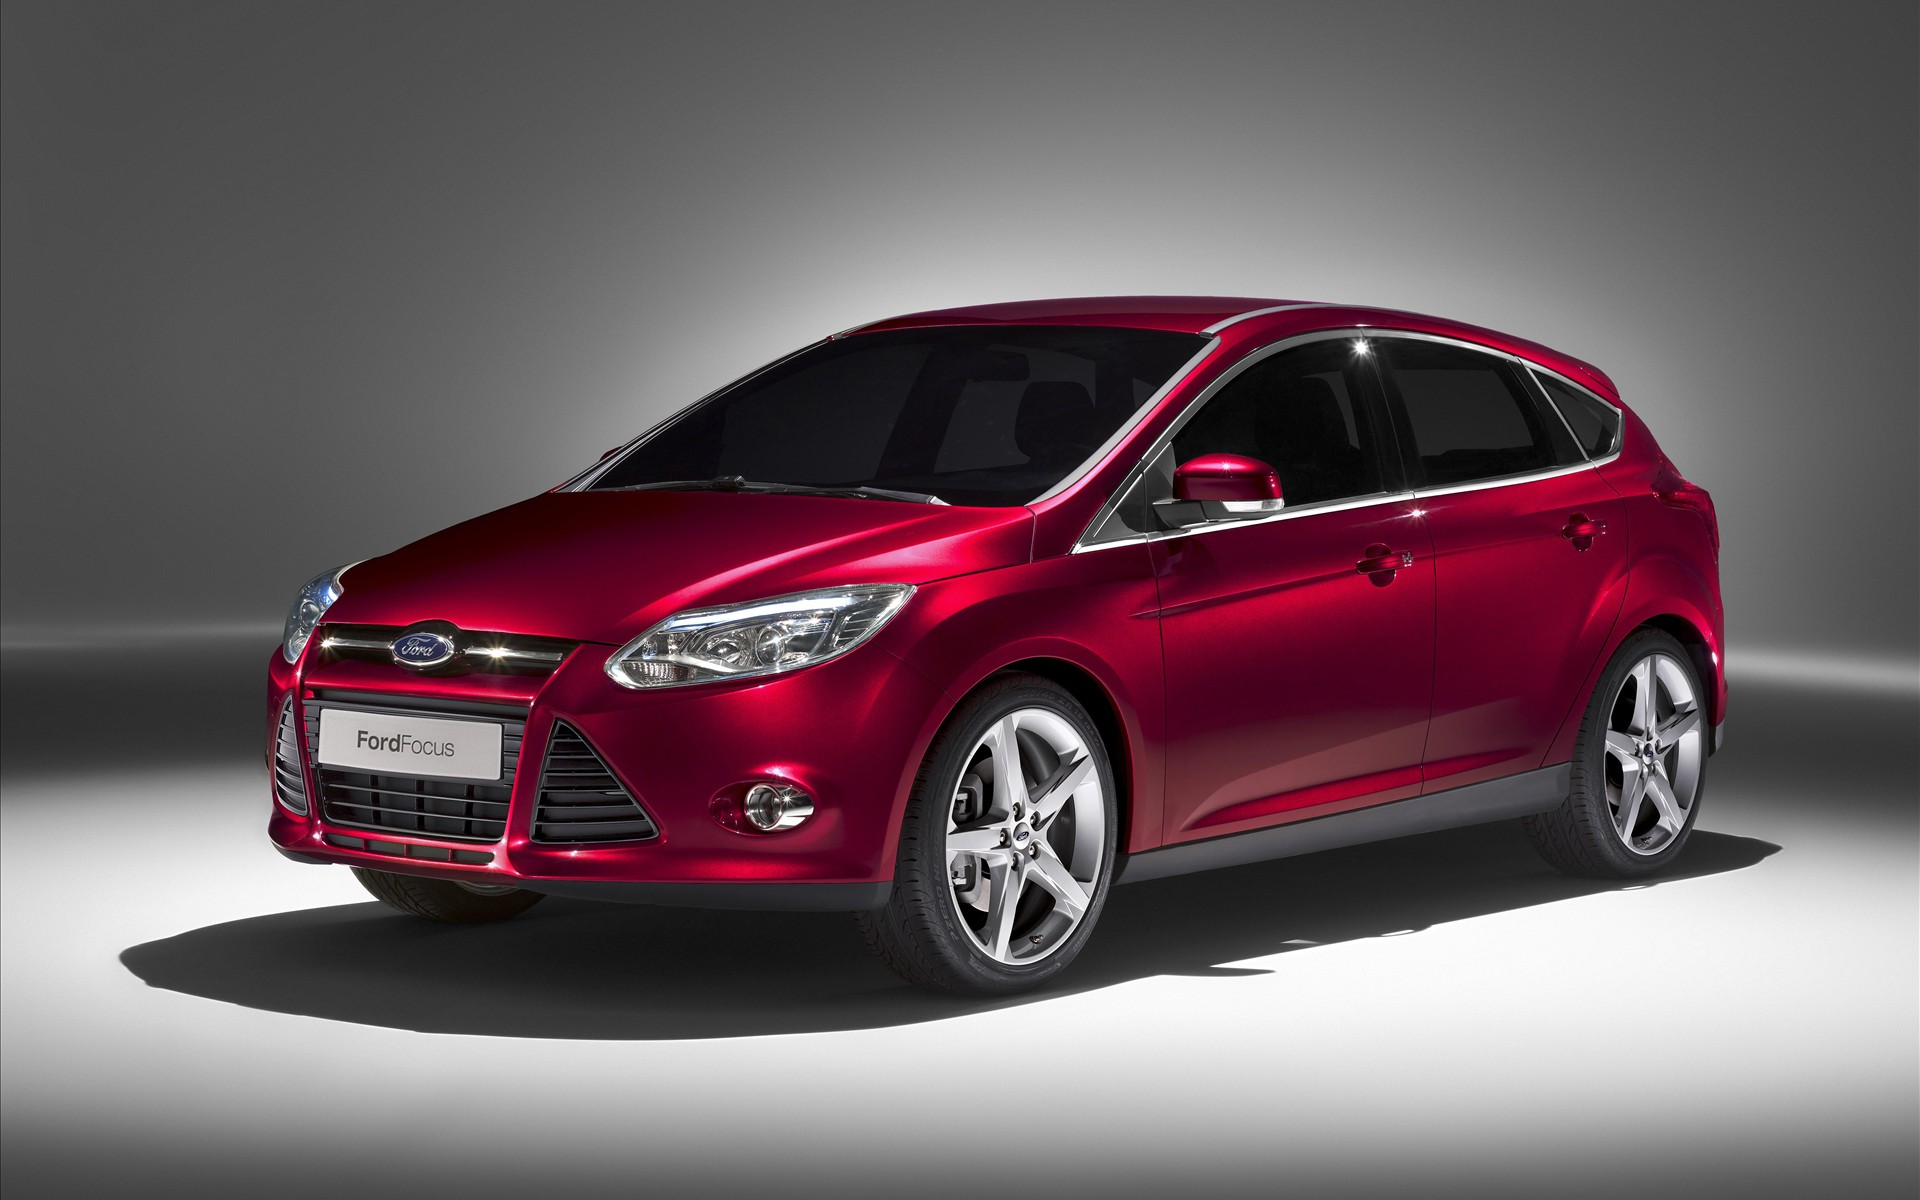 Ford focus 2011 photo - 2